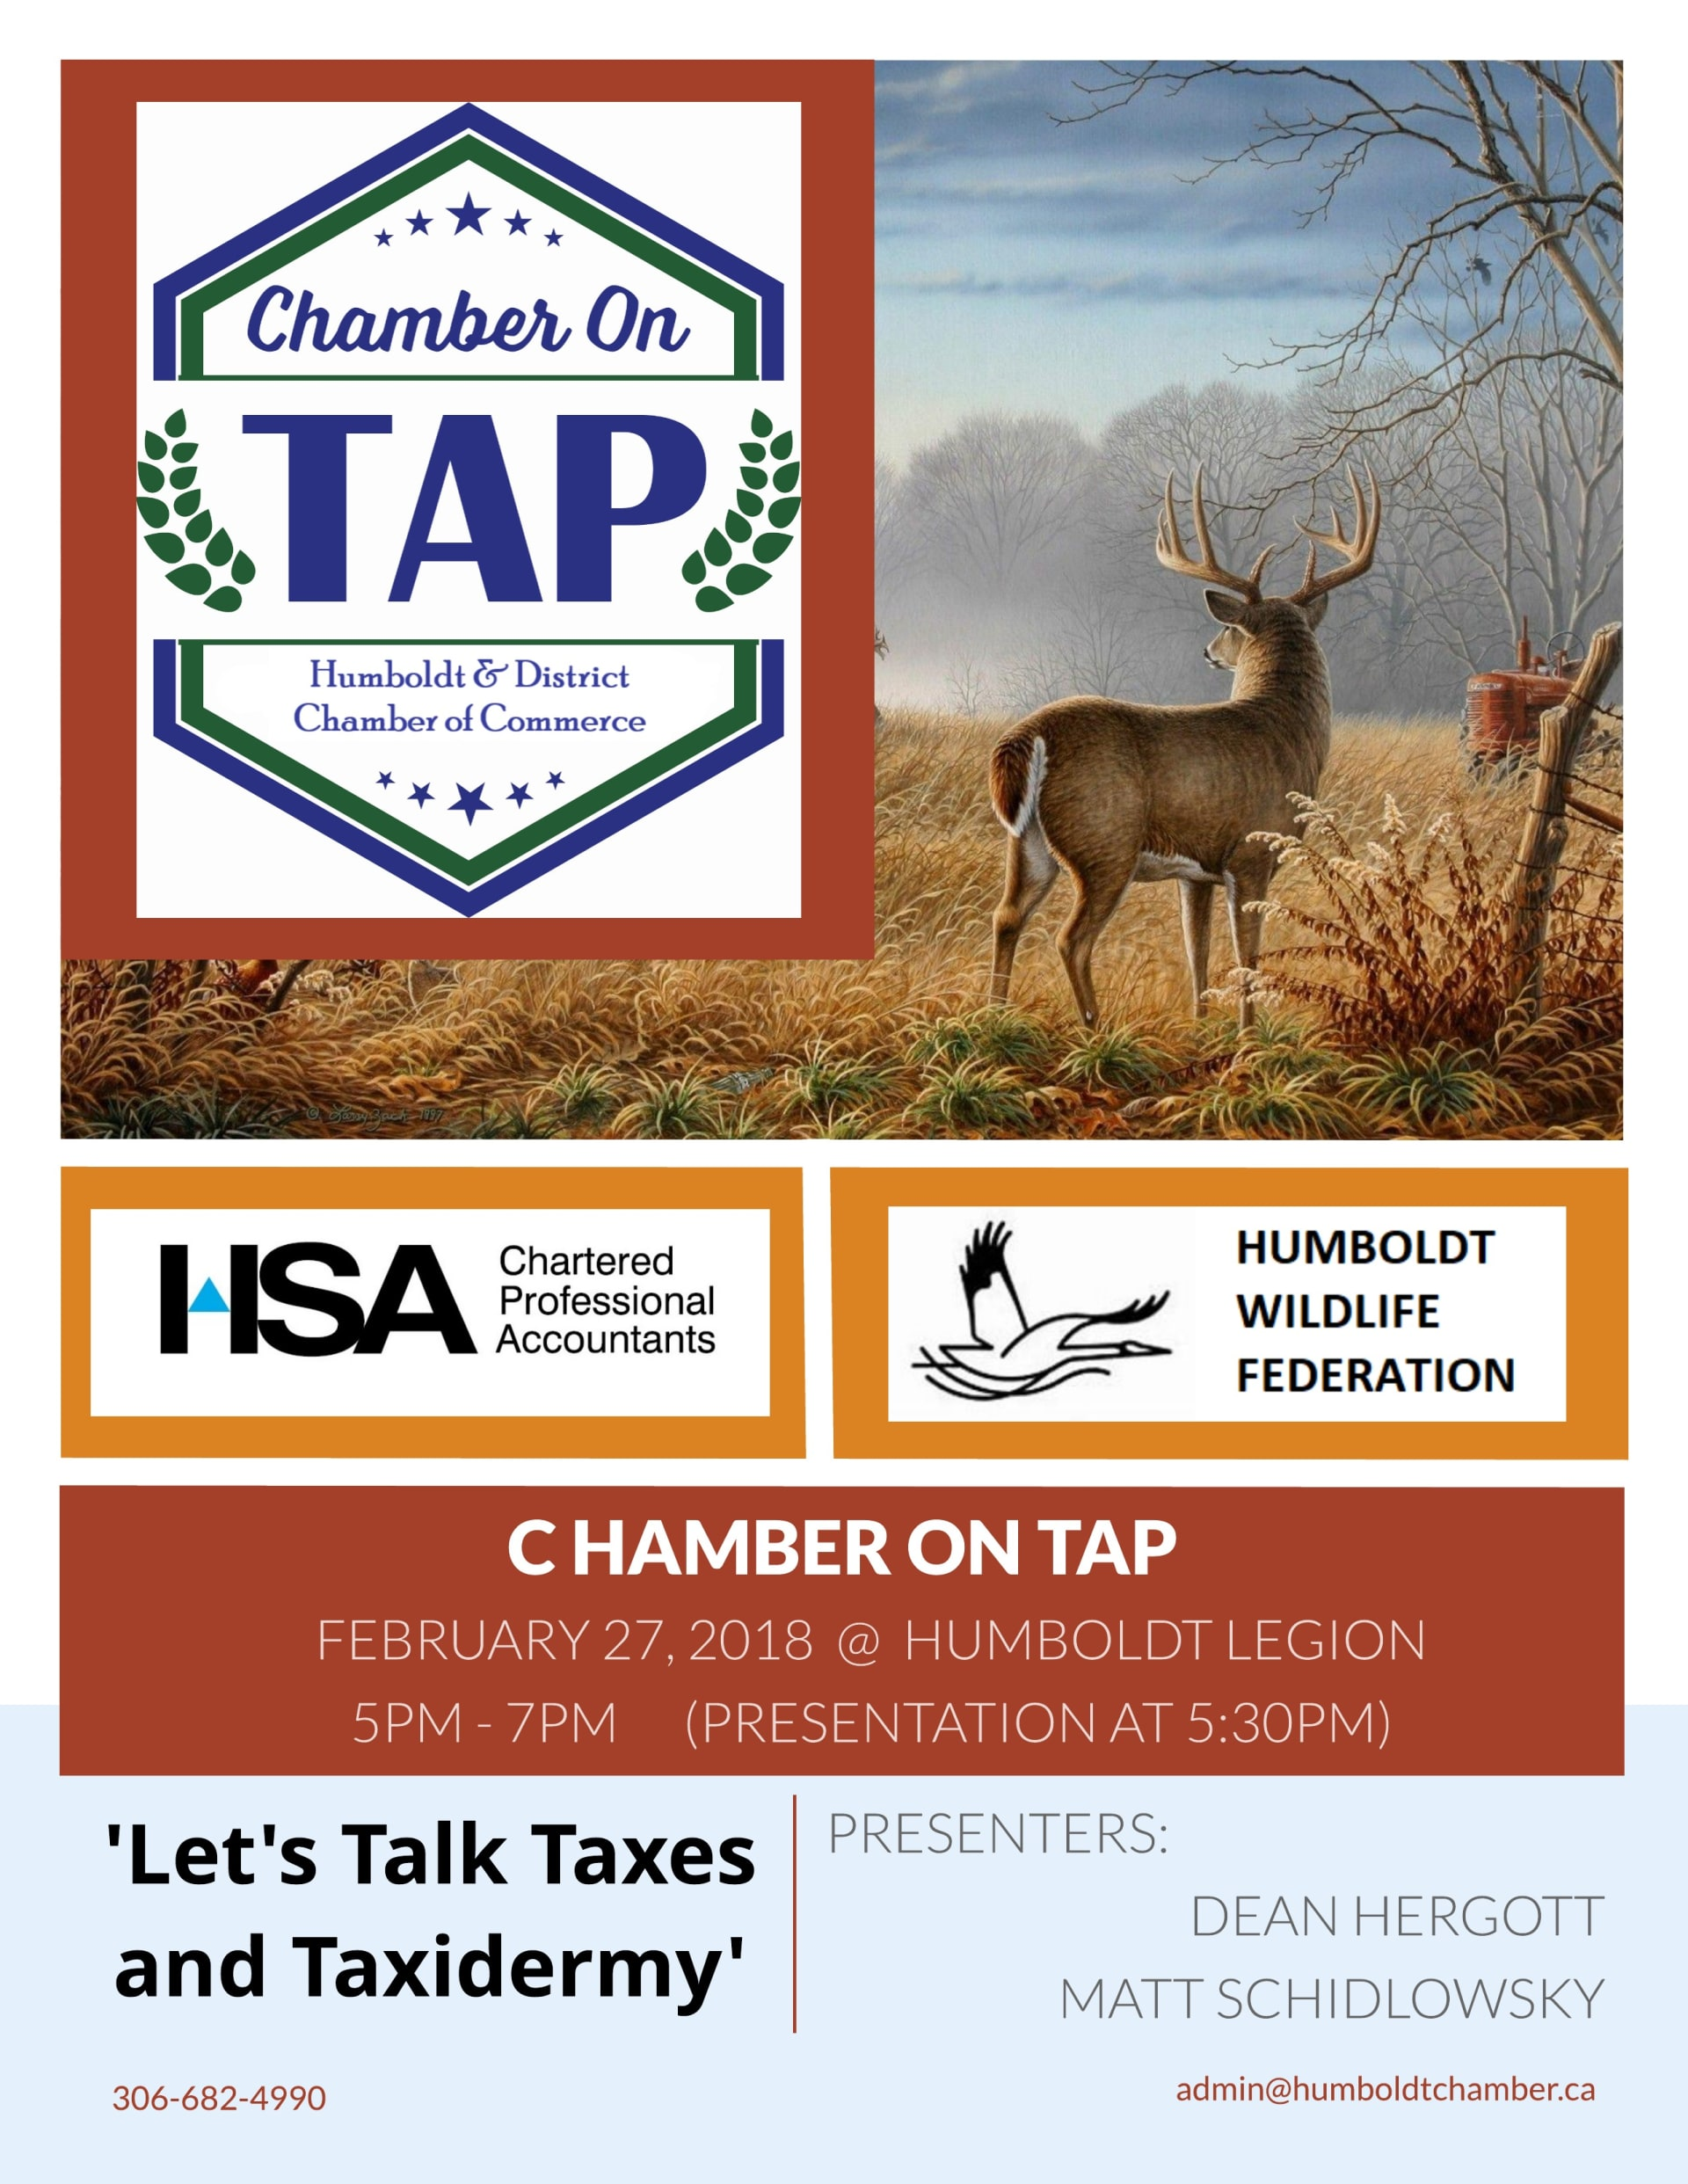 Chamber on Tap February 27 Legion clubroom Presenters are HSA chartered Professions accountants and the Humboldt Wildlife Federation